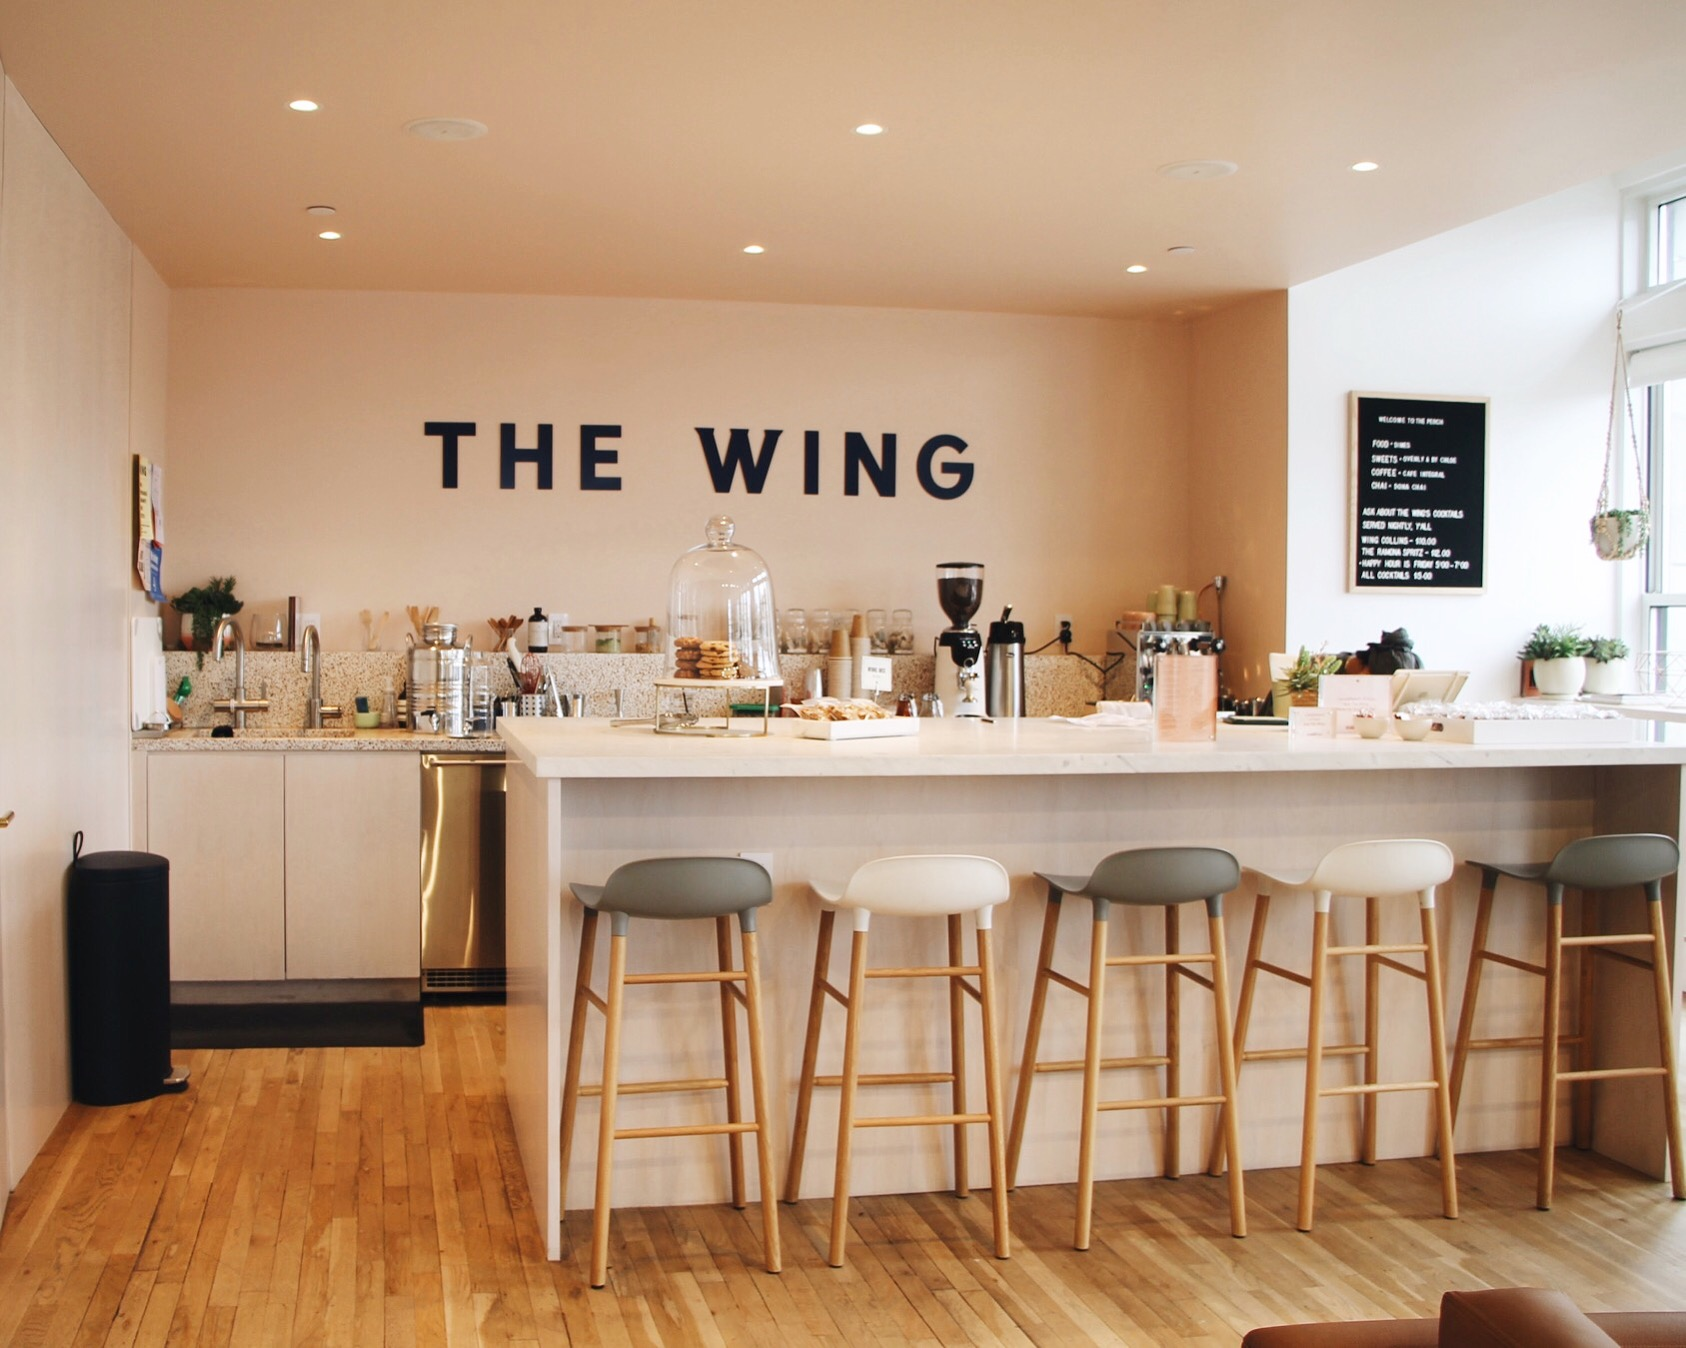 Photography: The Wing Café